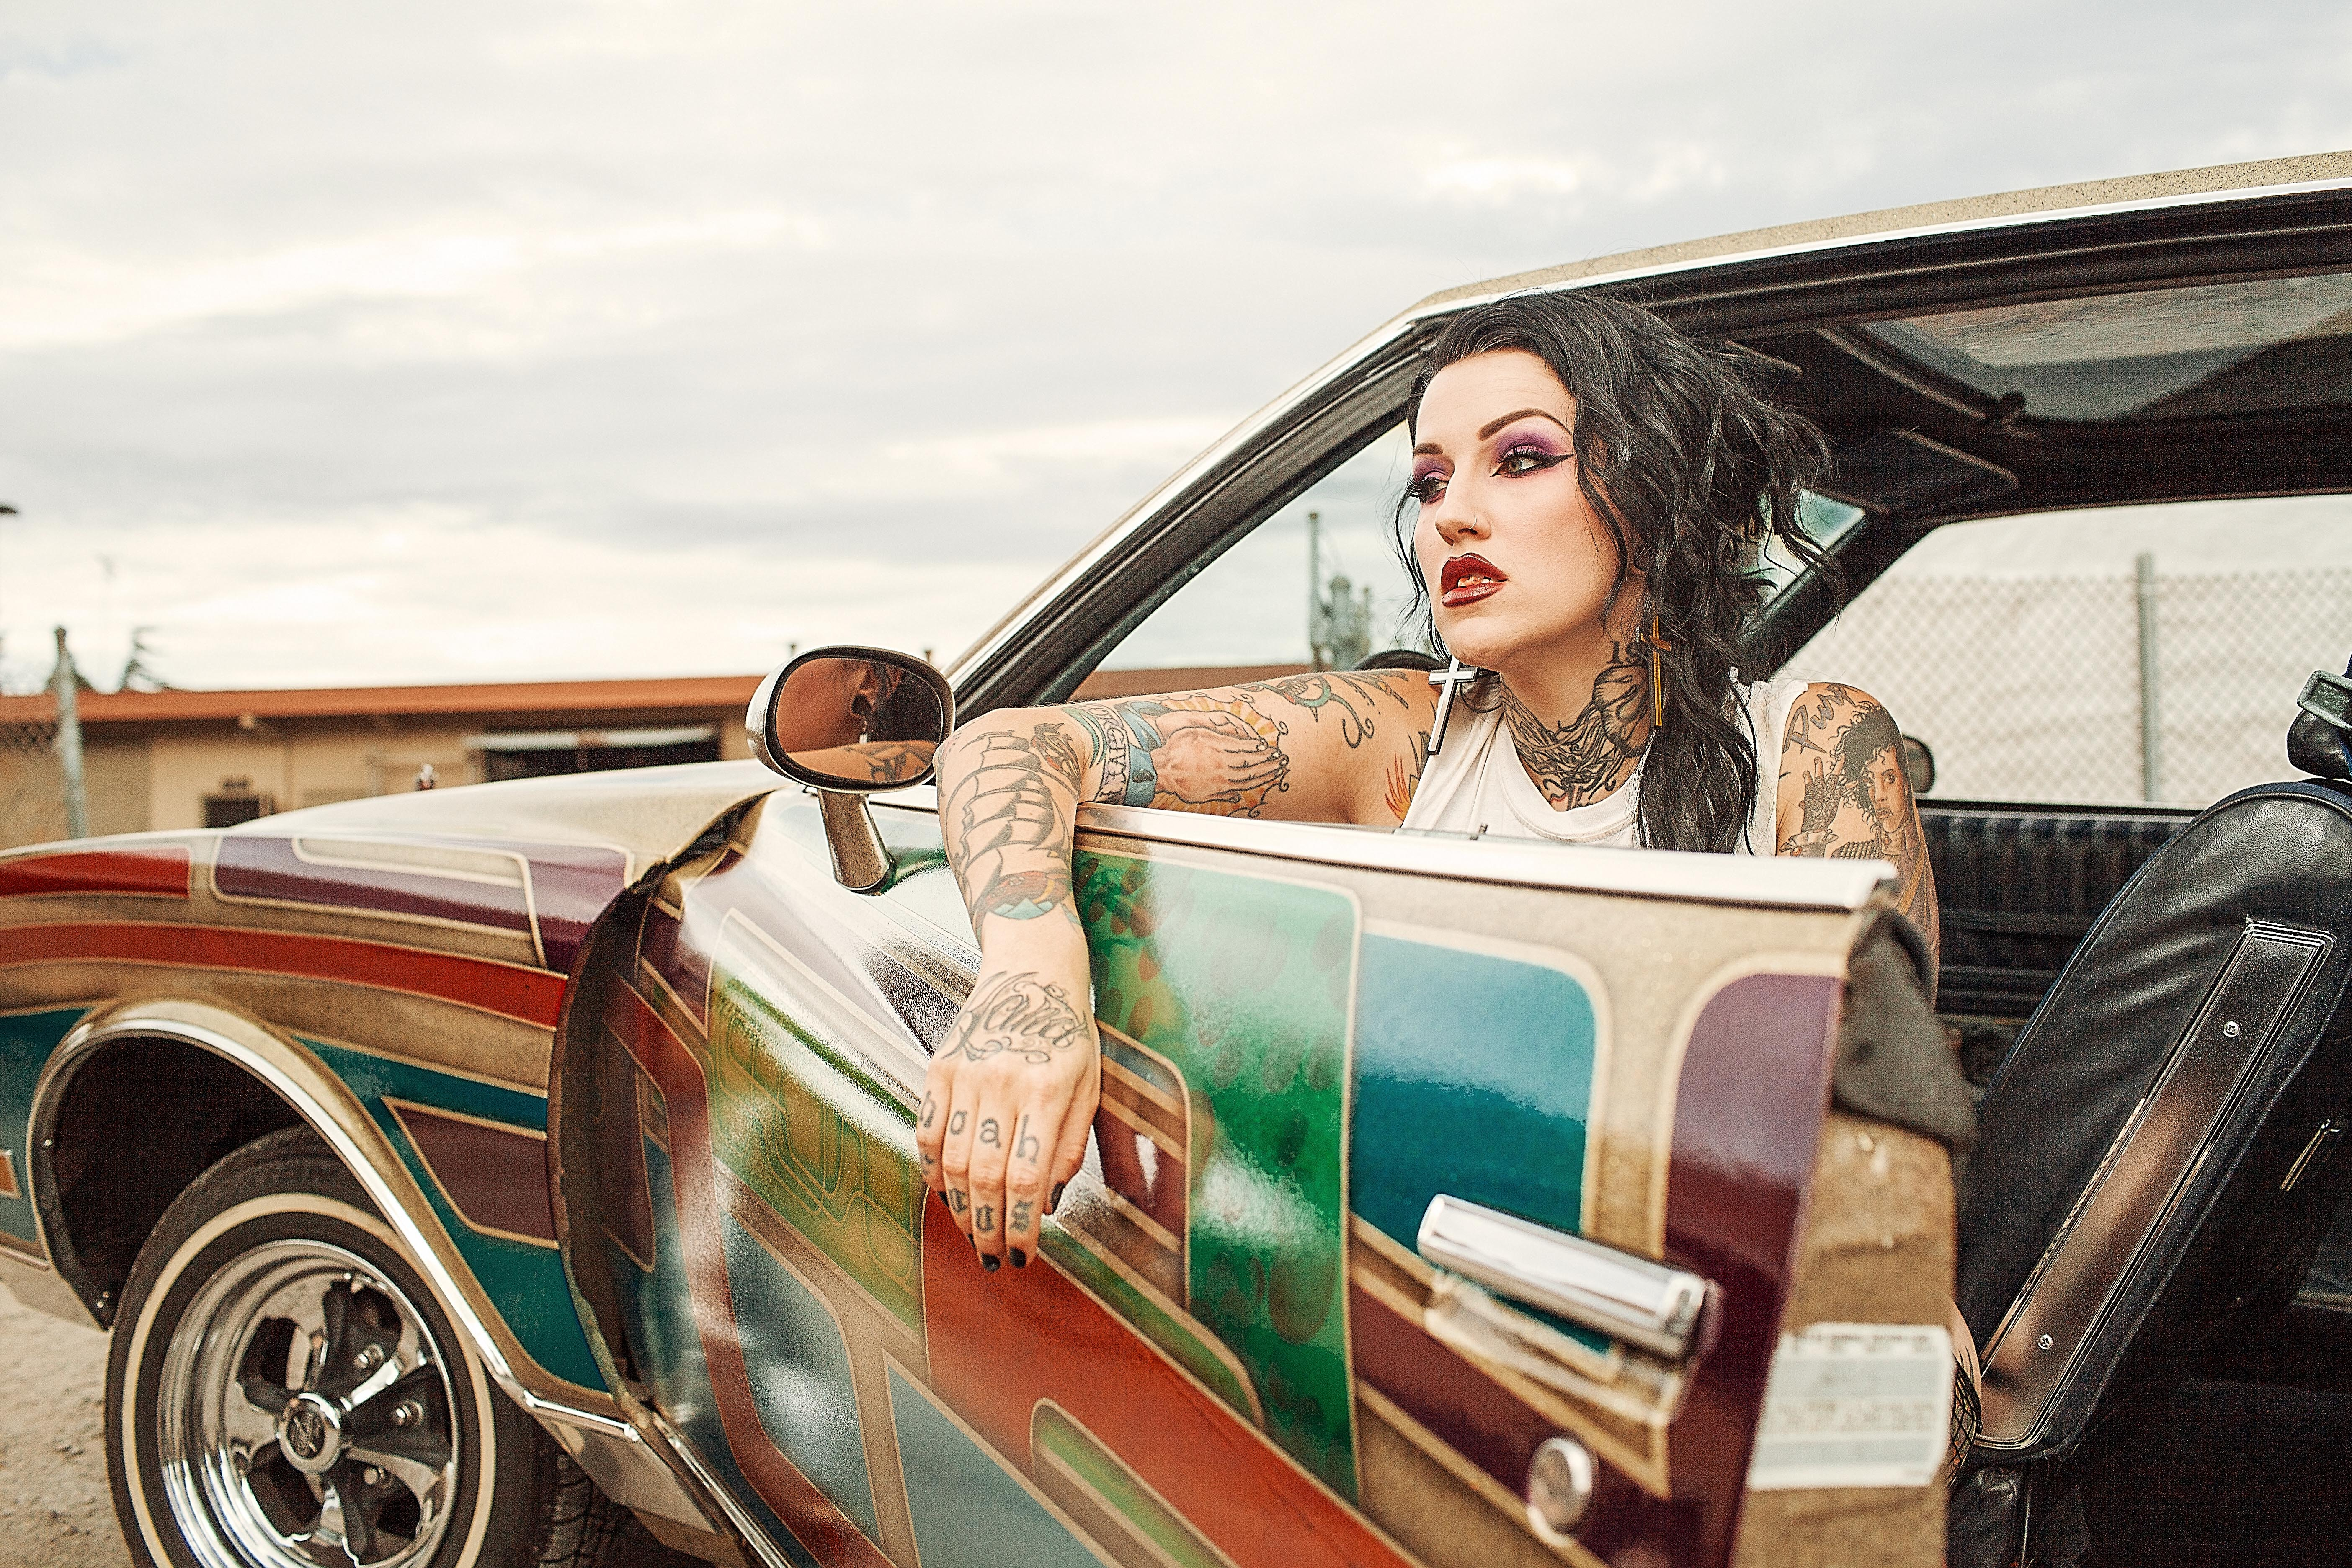 Woman with white tank top inside classic multicolored car photo